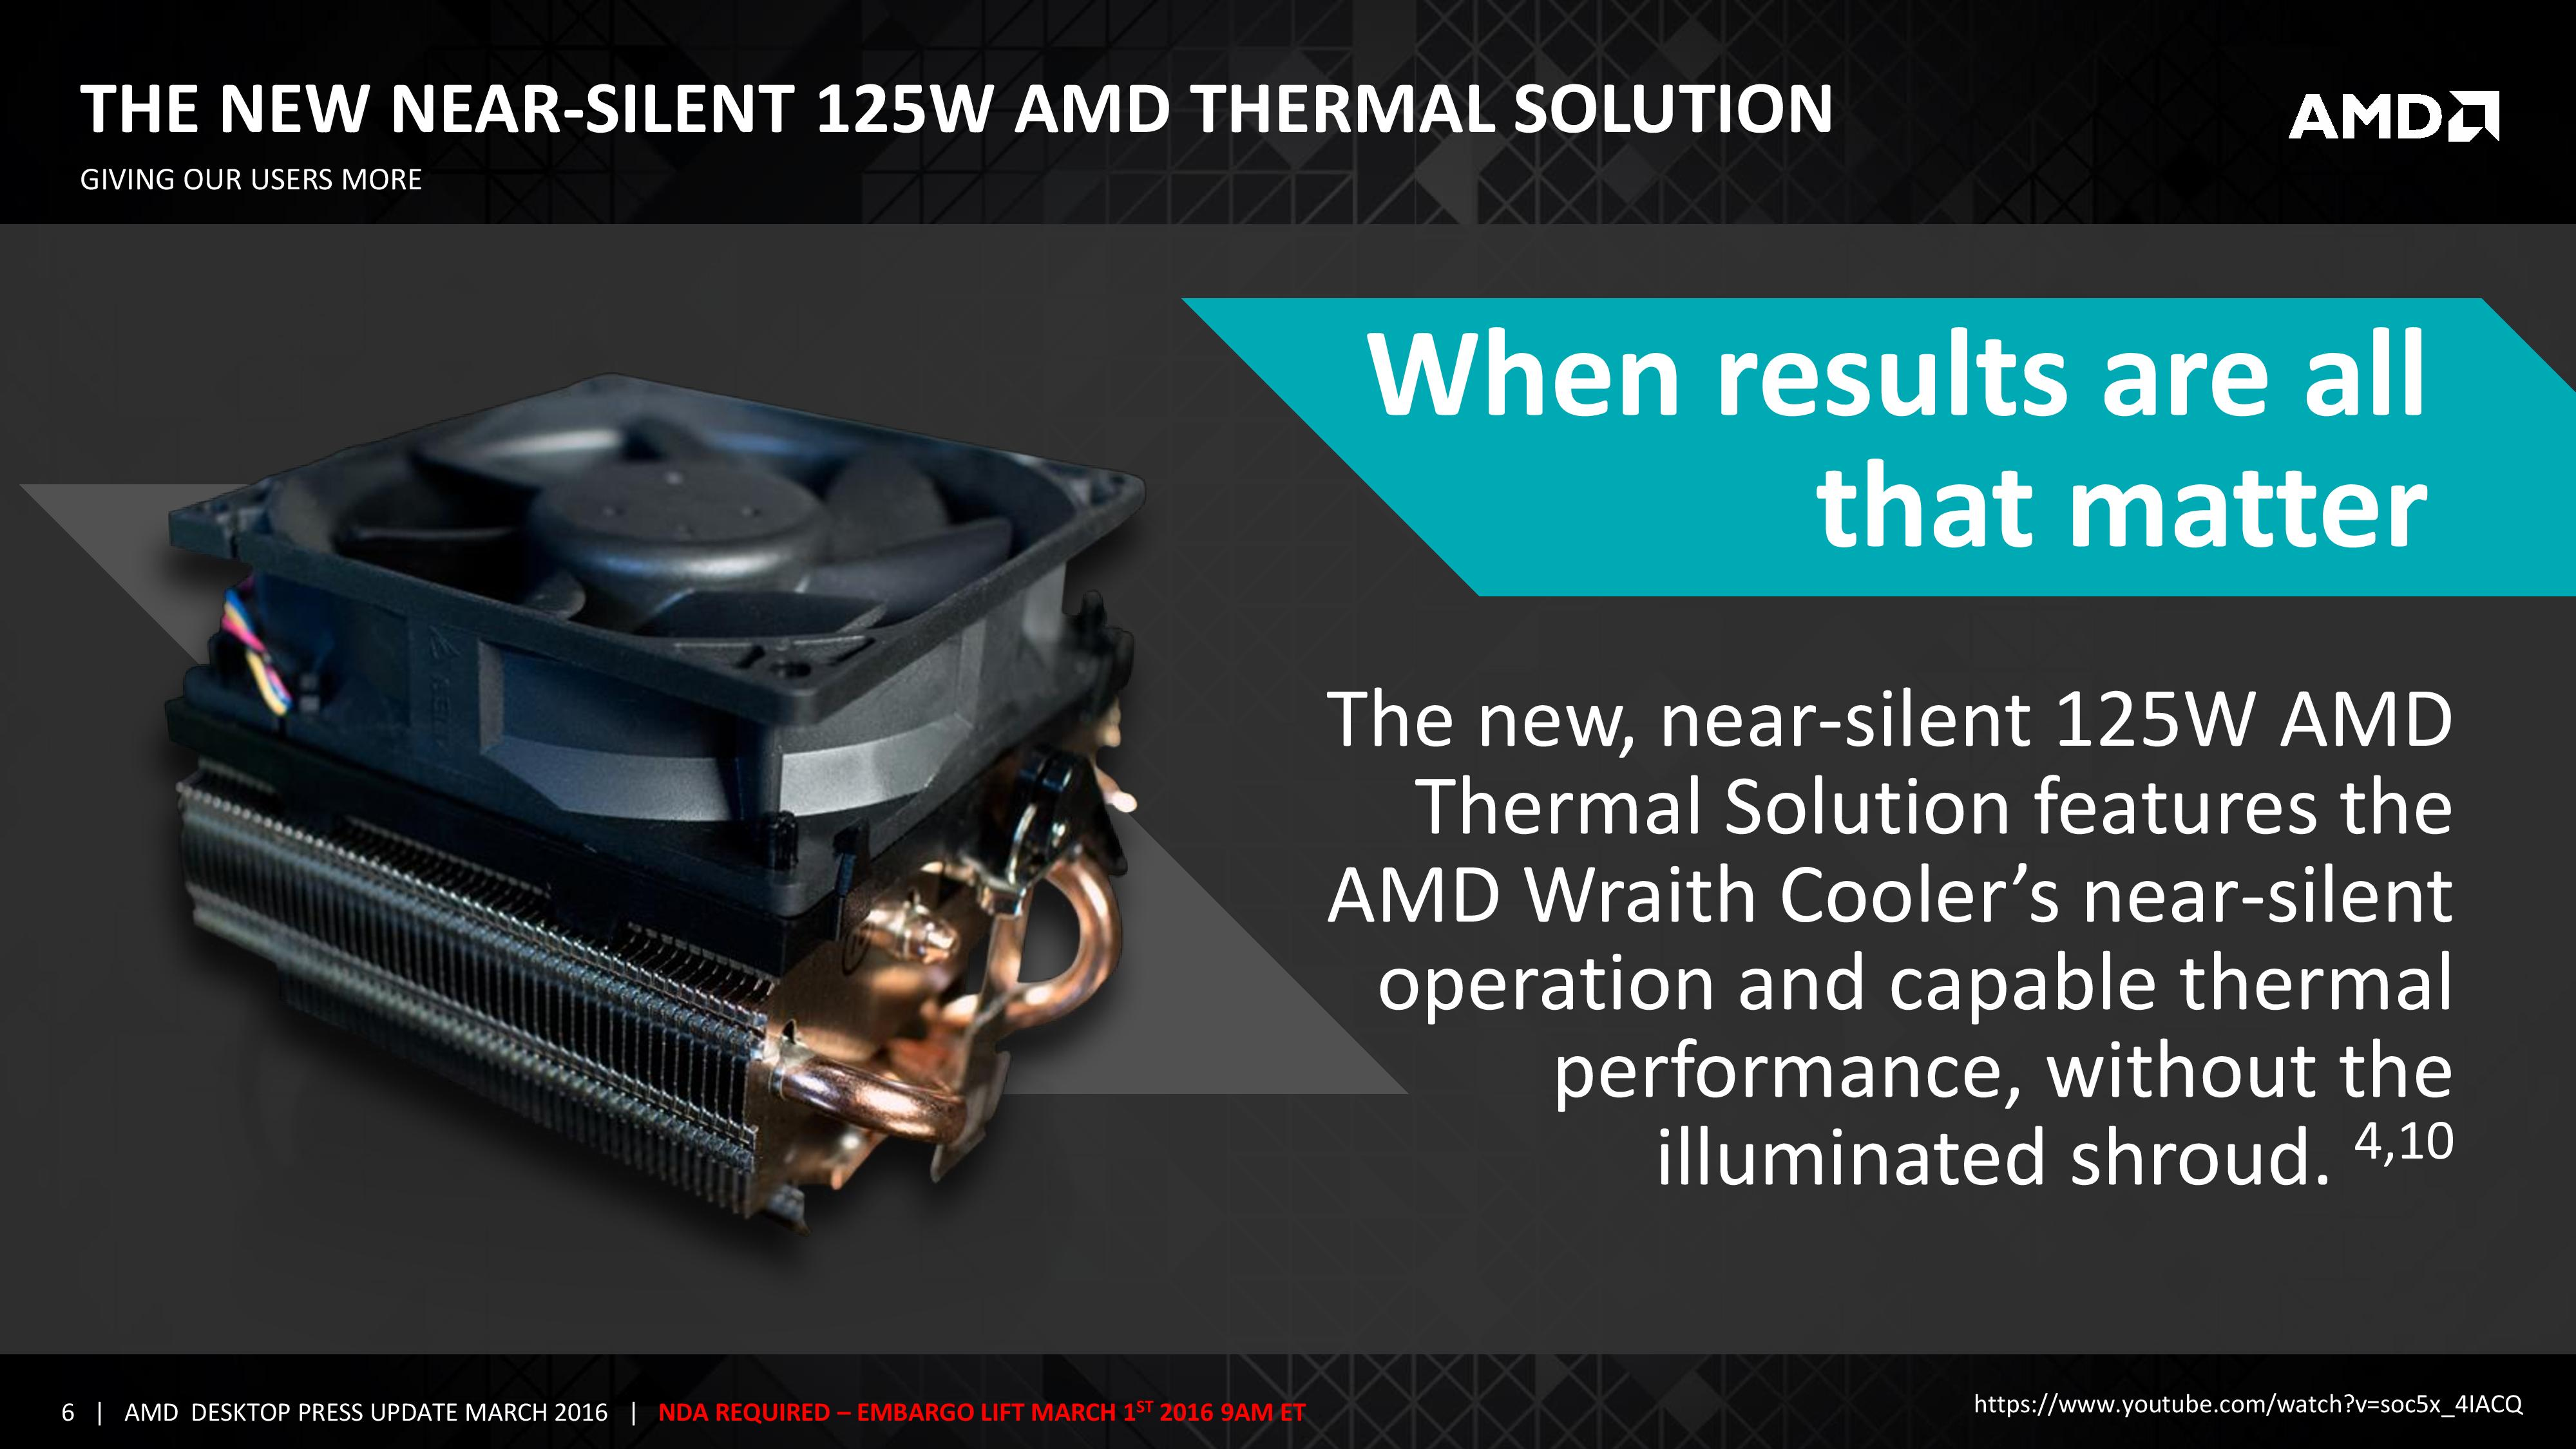 Amd Launches The A10 7890k And Athlon X4 880k Prosesor Fx 8370e Ampquotvisheraampquot These Parts Are Being Made Available To Channel Distributors Today Although It May Take Up A Month Hit Shelves For End Users Purchase